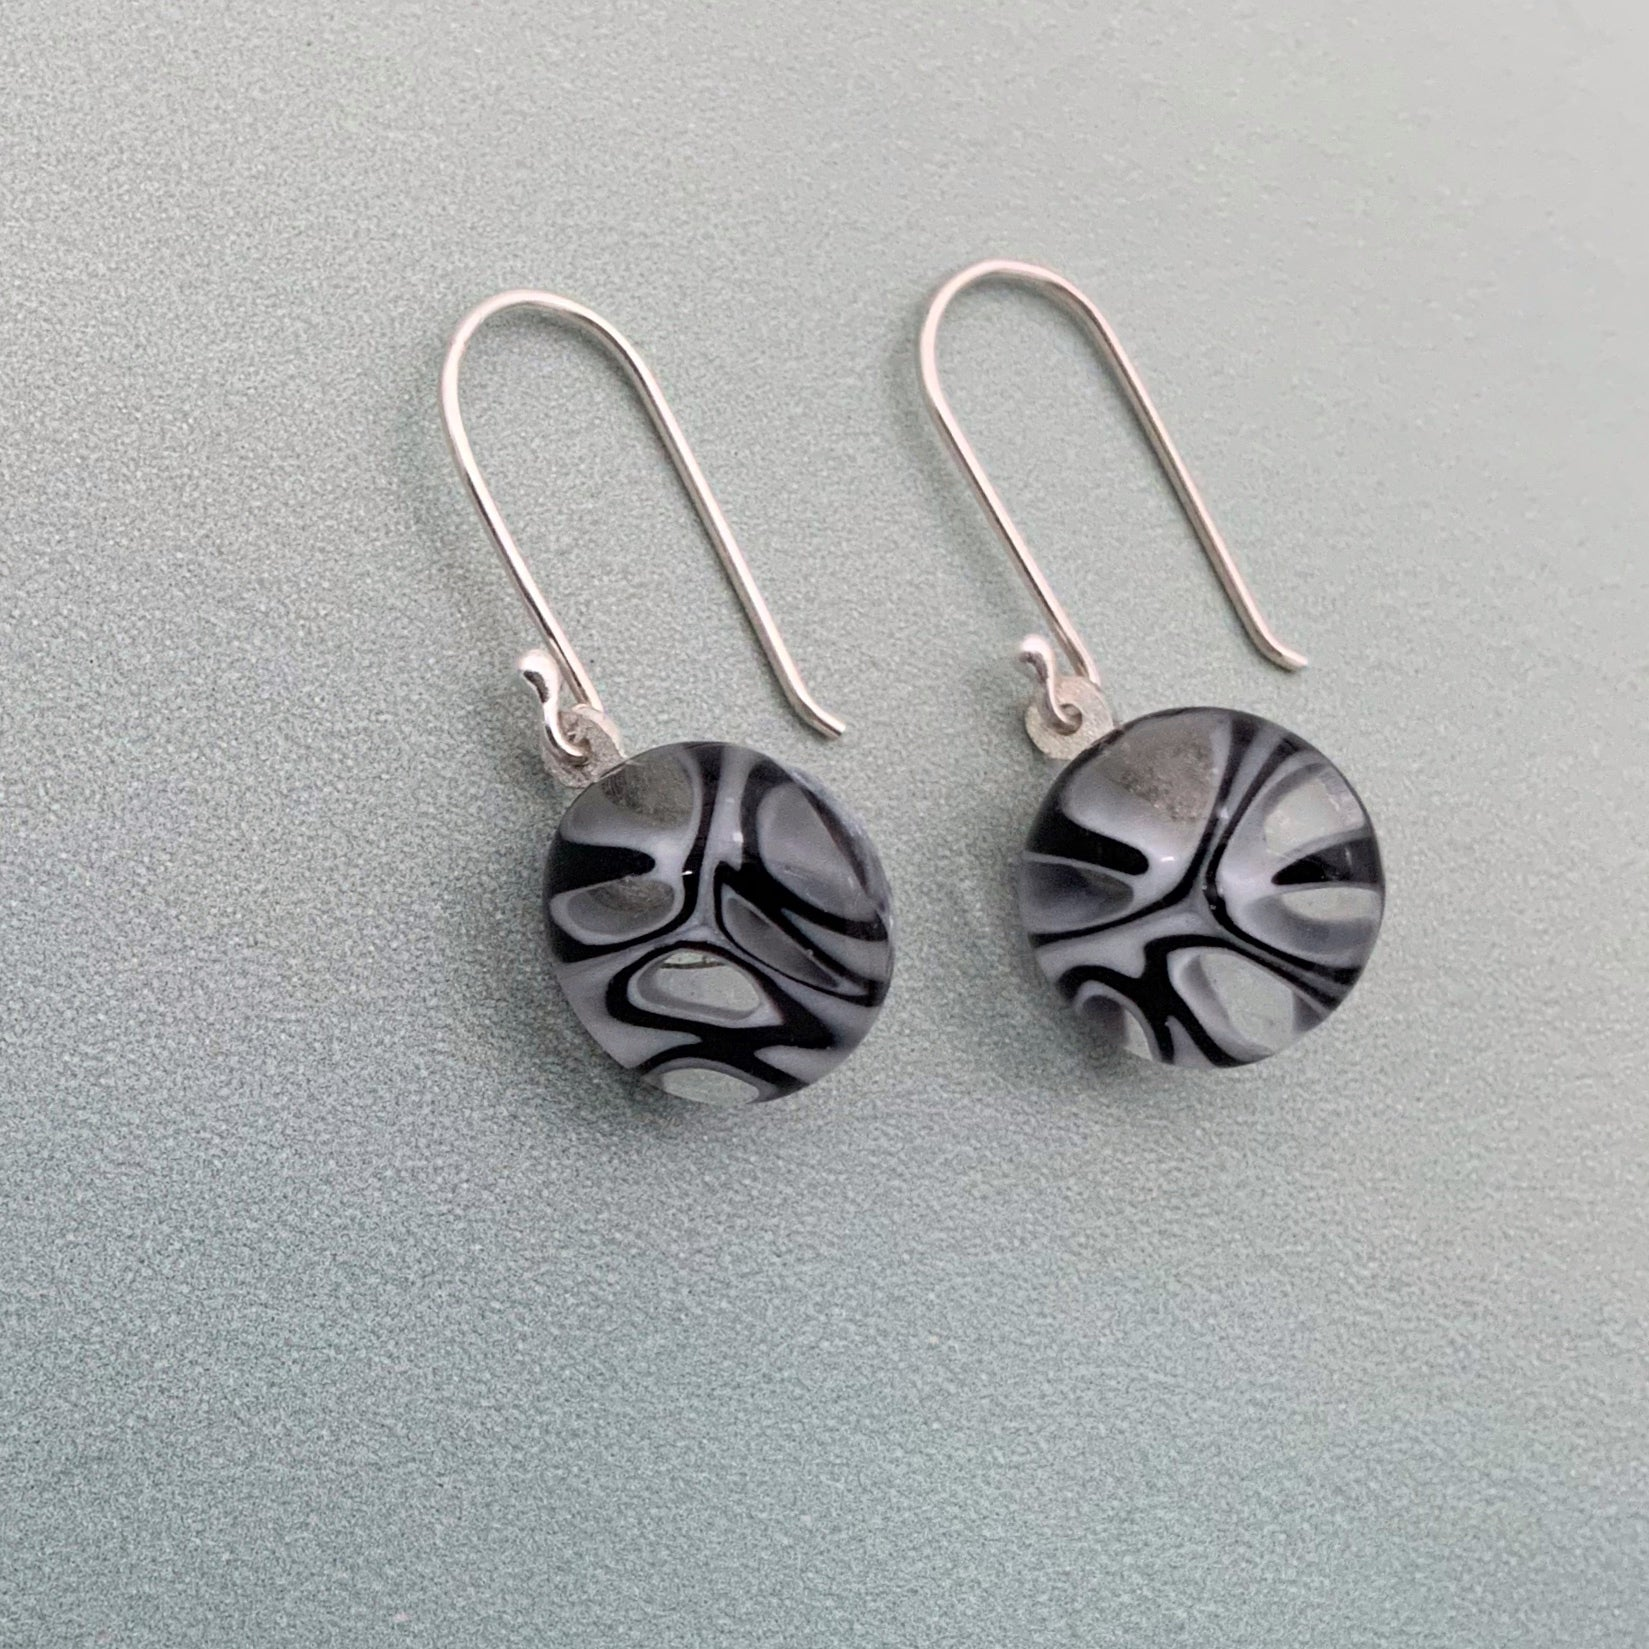 Murrini black and white glass dangle earrings